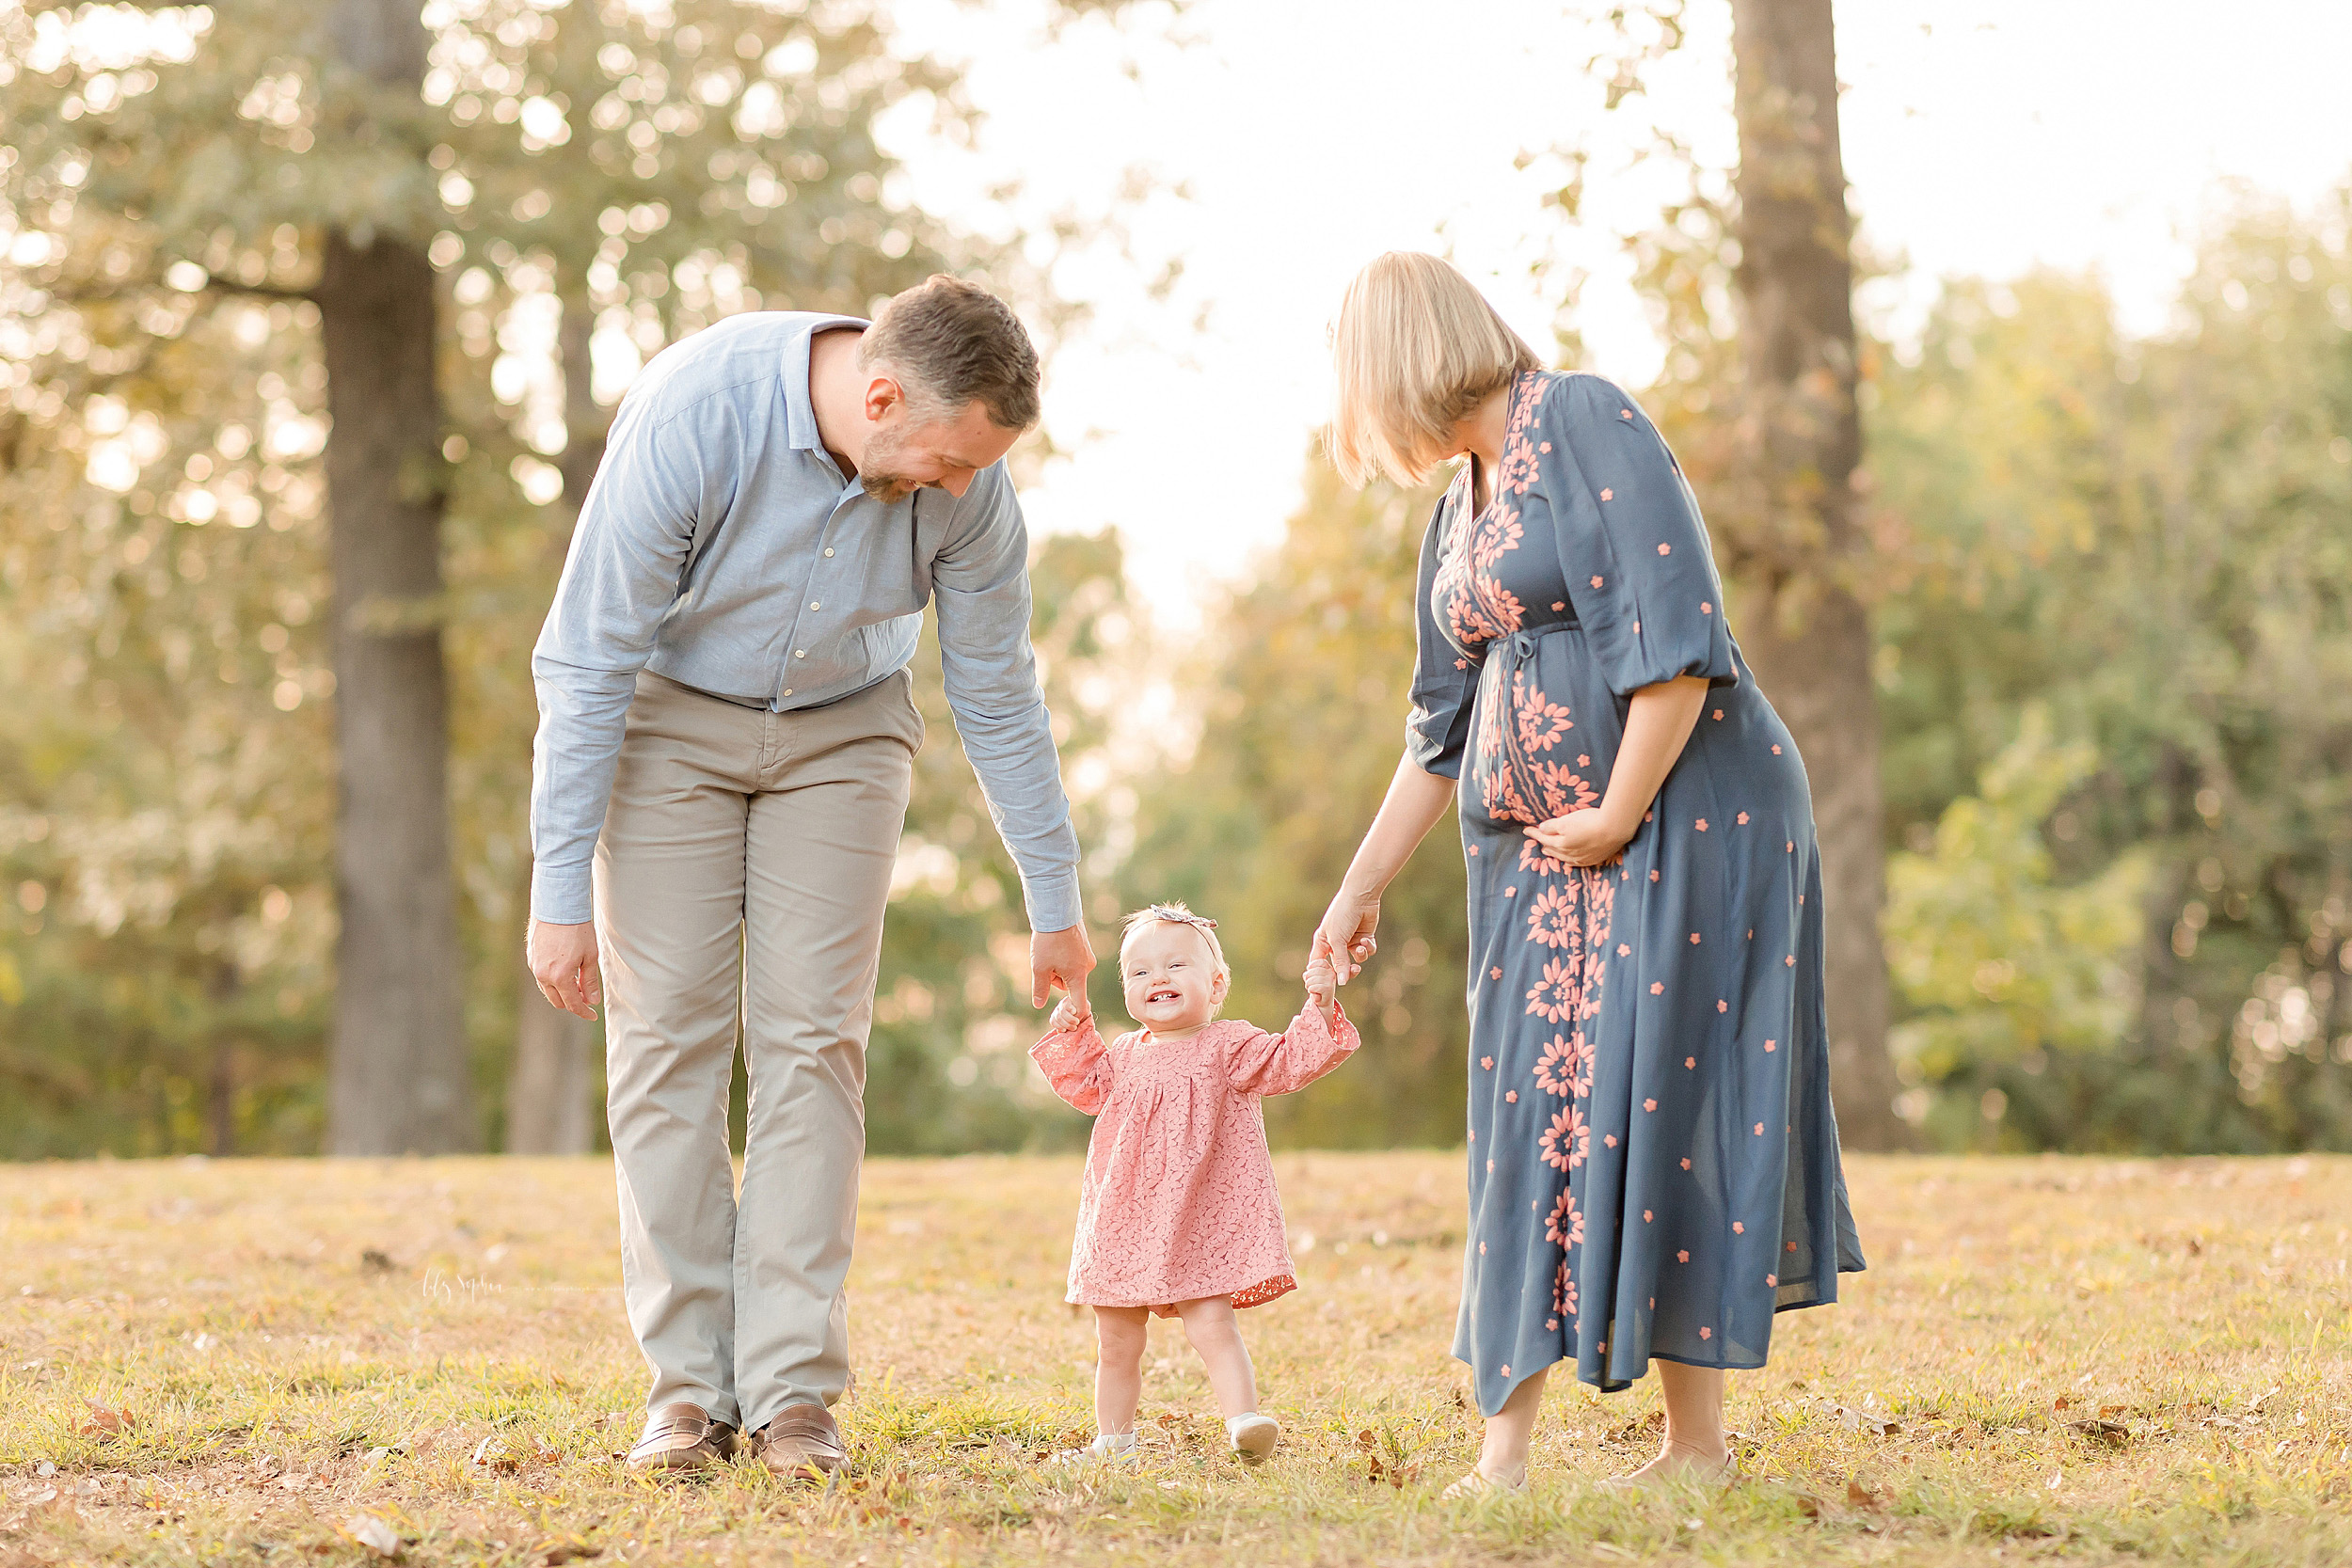 atlanta-brookhaven-decatur-sandy-springs-buckhead-virginia-highlands-west-end-decatur-lily-sophia-photography-outdoor-family-photos-milestone-fall-baby-girl_1542.jpg